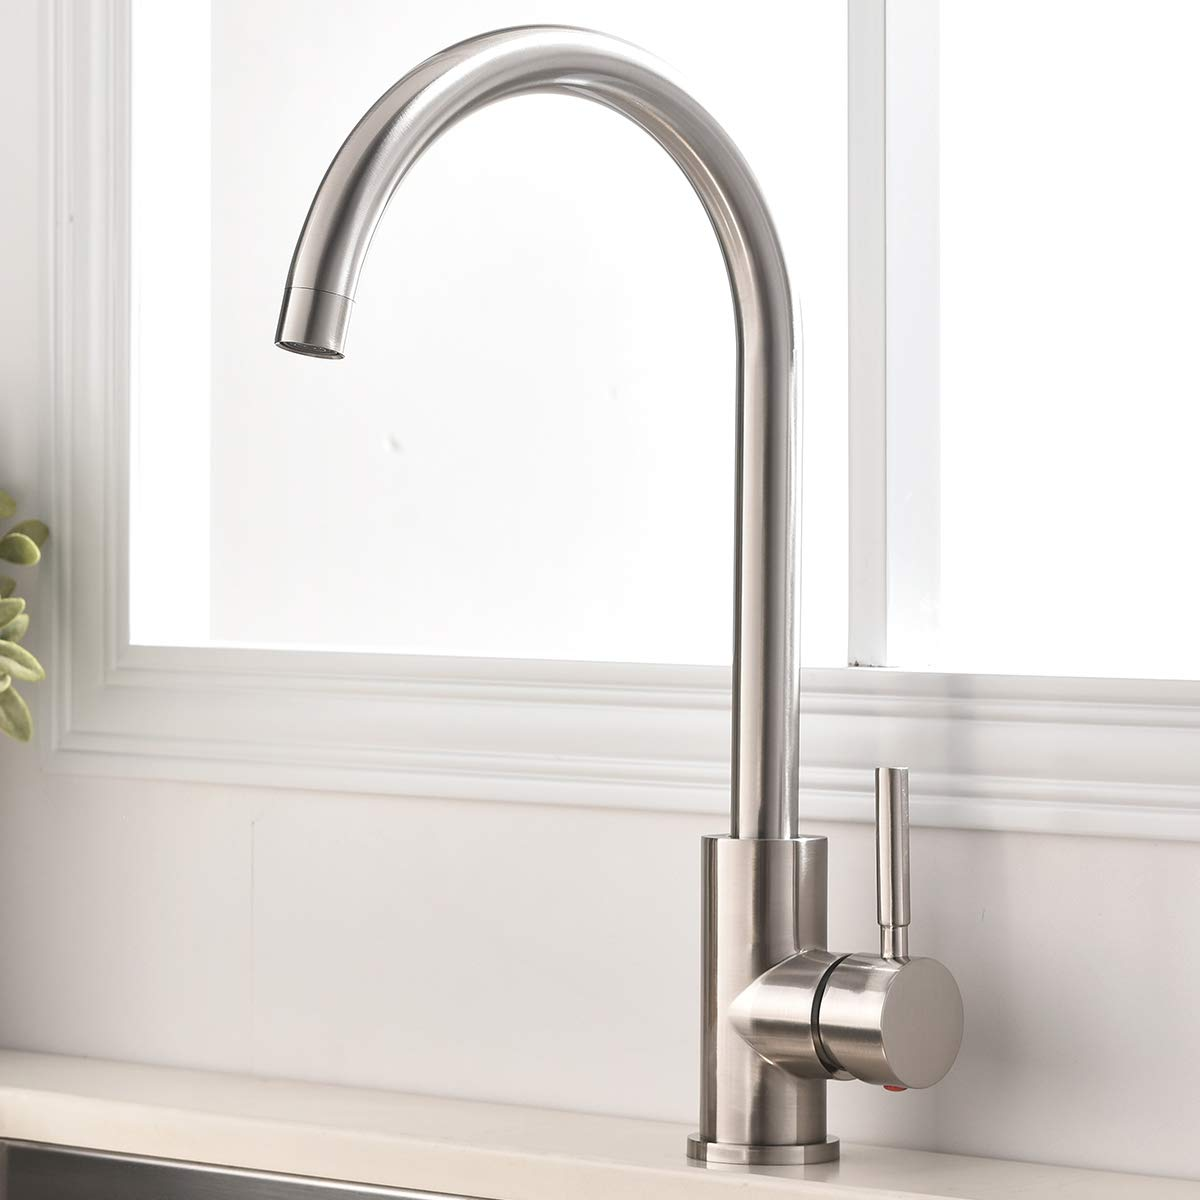 UFAUCET Contemporary High-arch Single Handle Prep Brushed Nickel Kitchen Sink Faucet,Modern Bar Sink Faucets